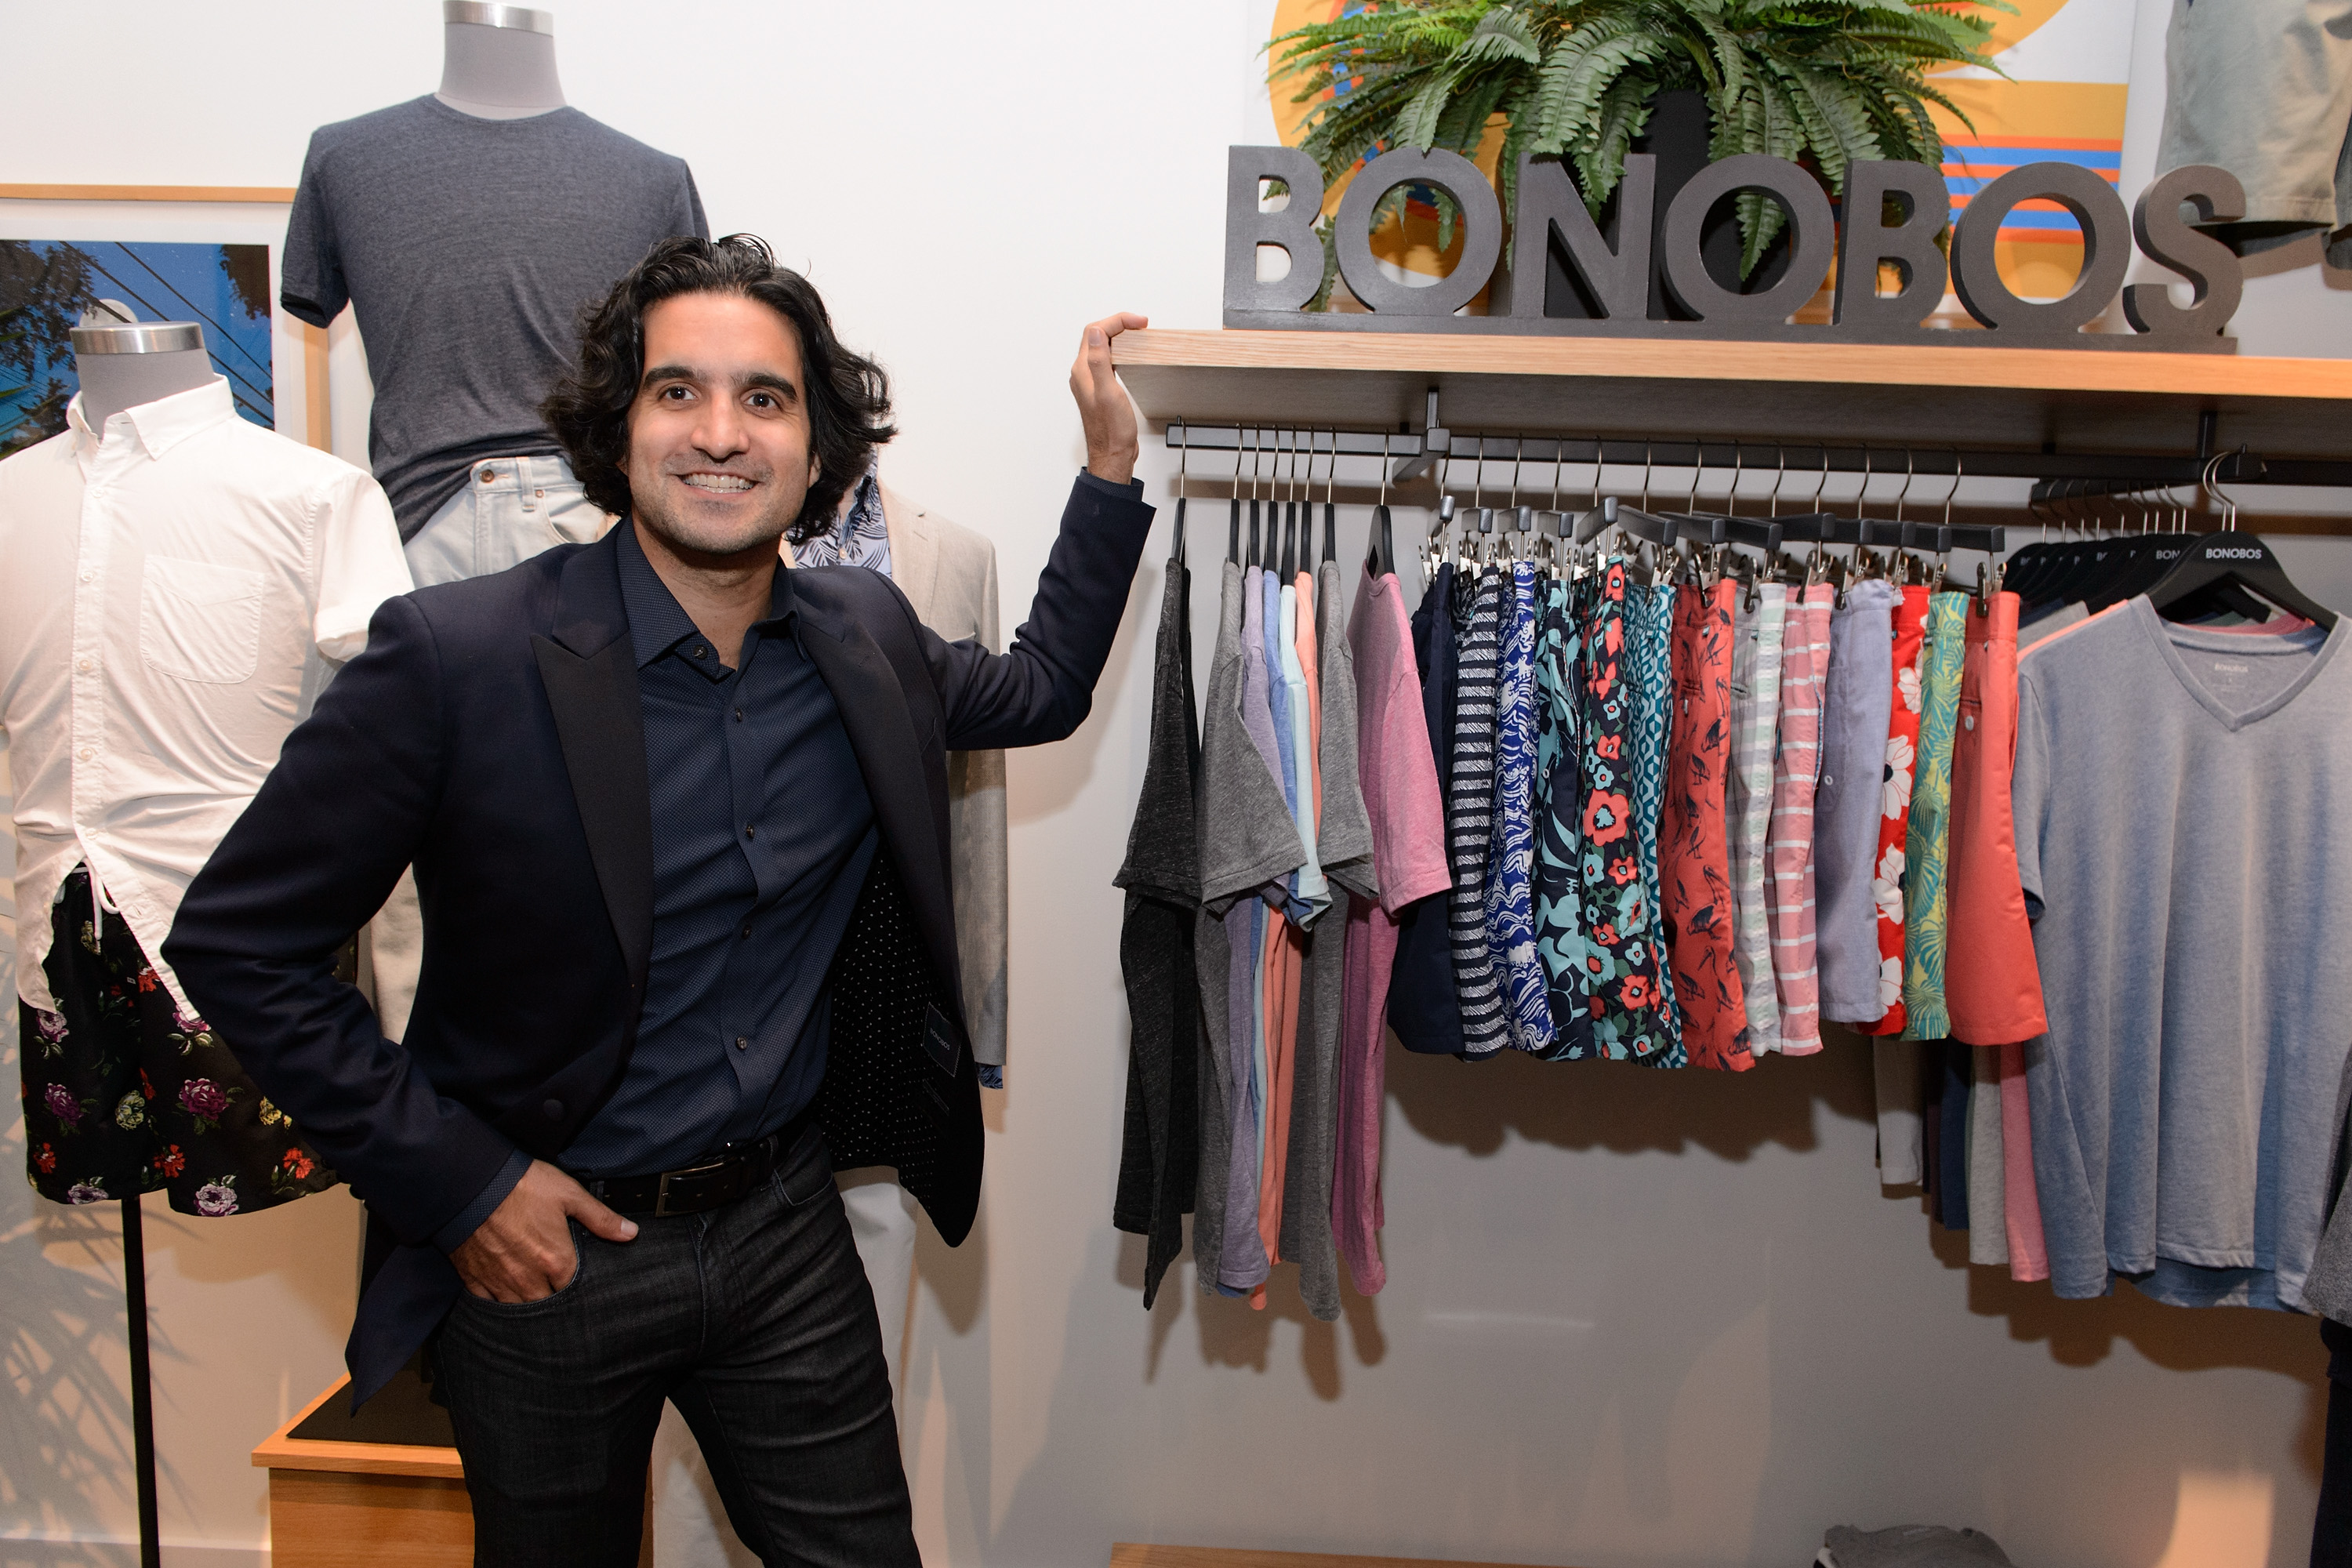 Bonobos founder Andy Dunn poses while leaning against a store's clothing rack.